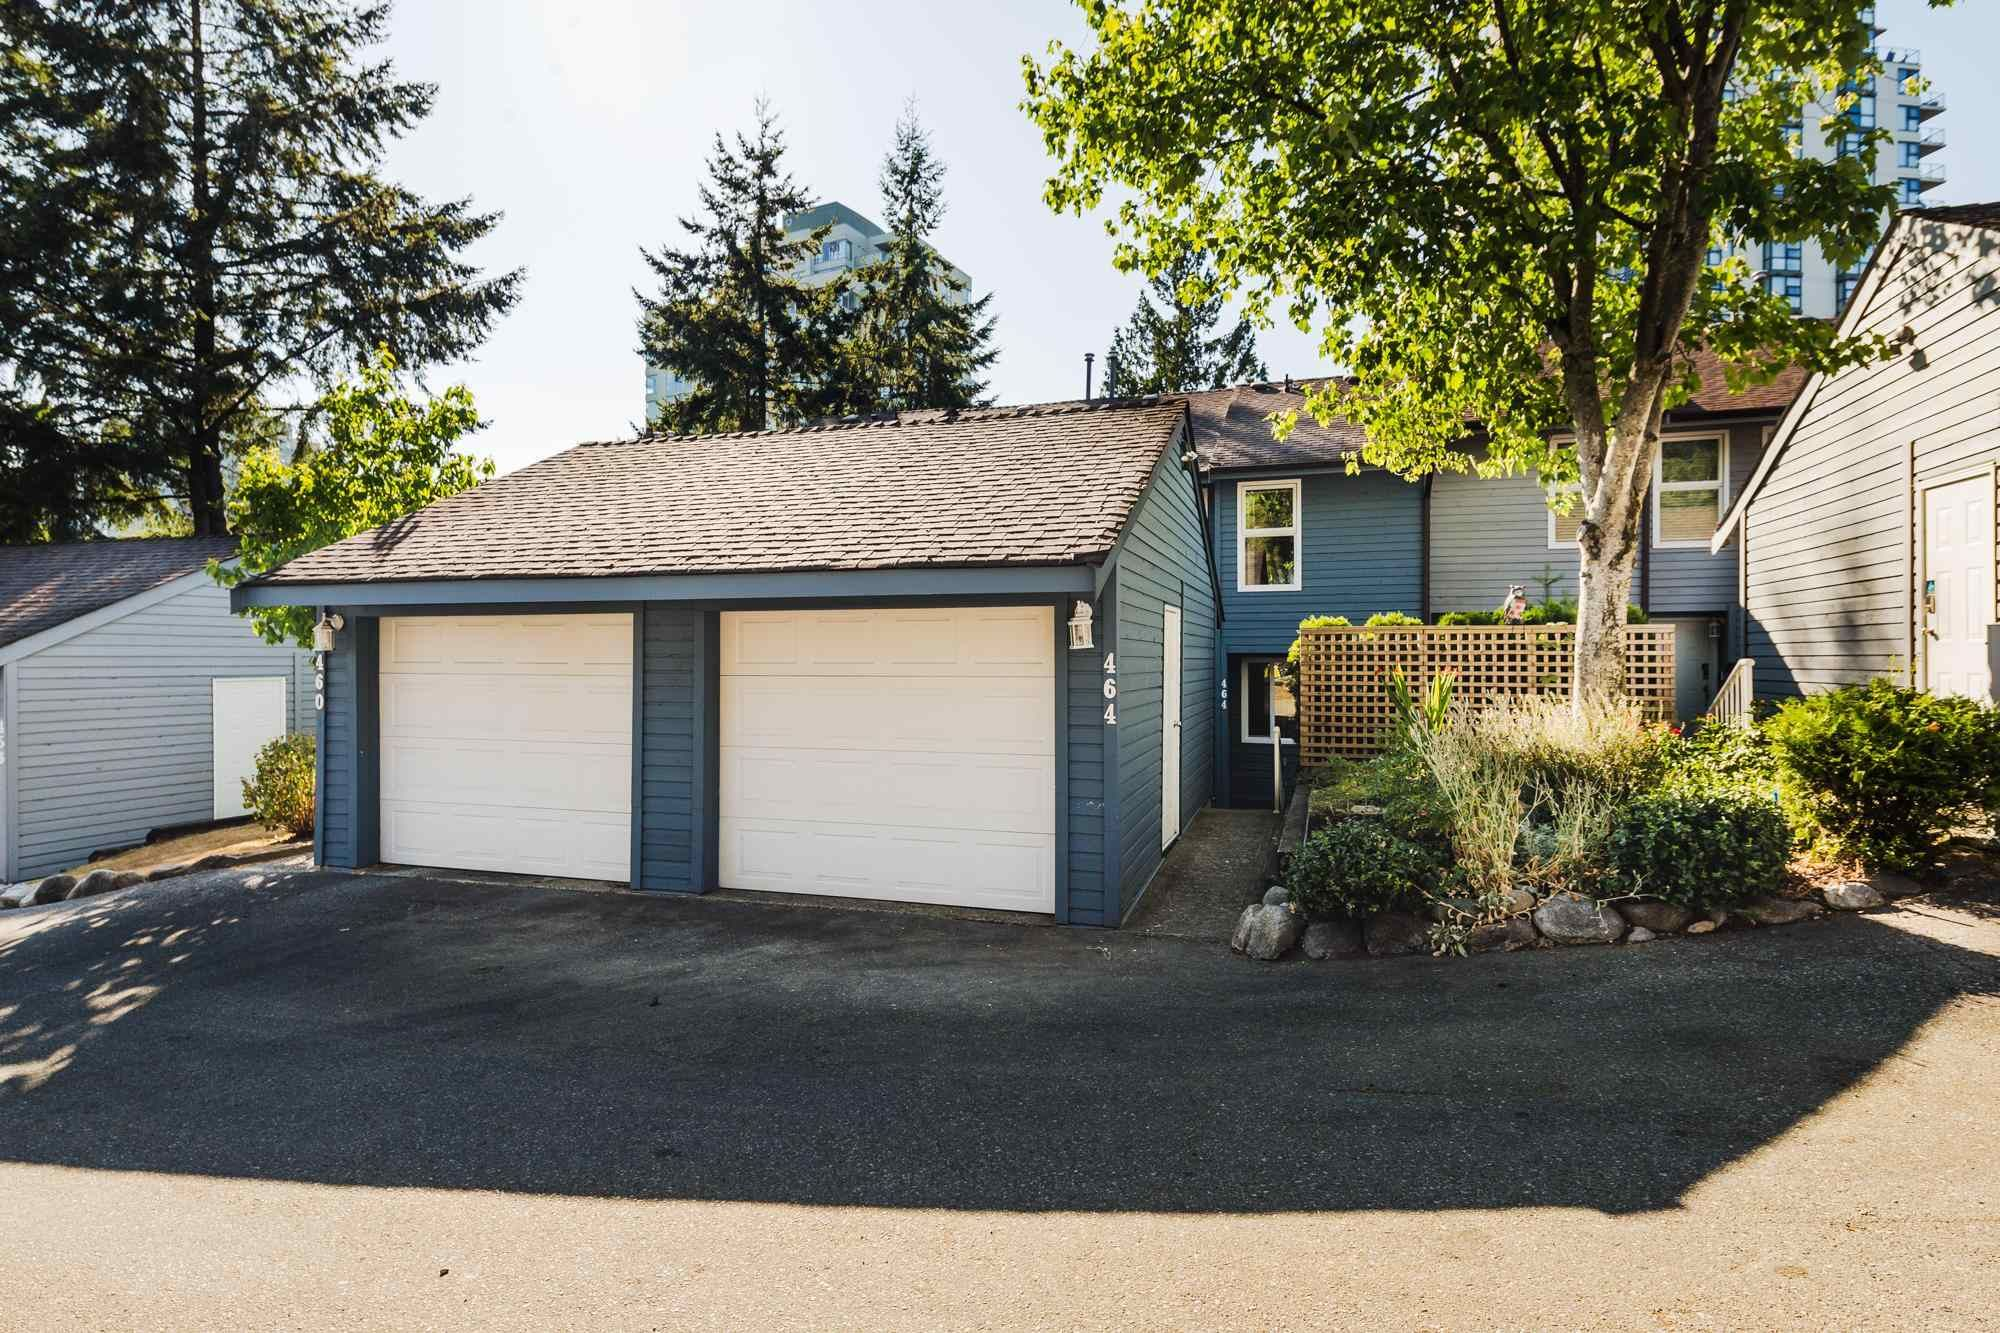 """Main Photo: 464 LEHMAN Place in Port Moody: North Shore Pt Moody Townhouse for sale in """"EAGLEPOINT"""" : MLS®# R2604397"""